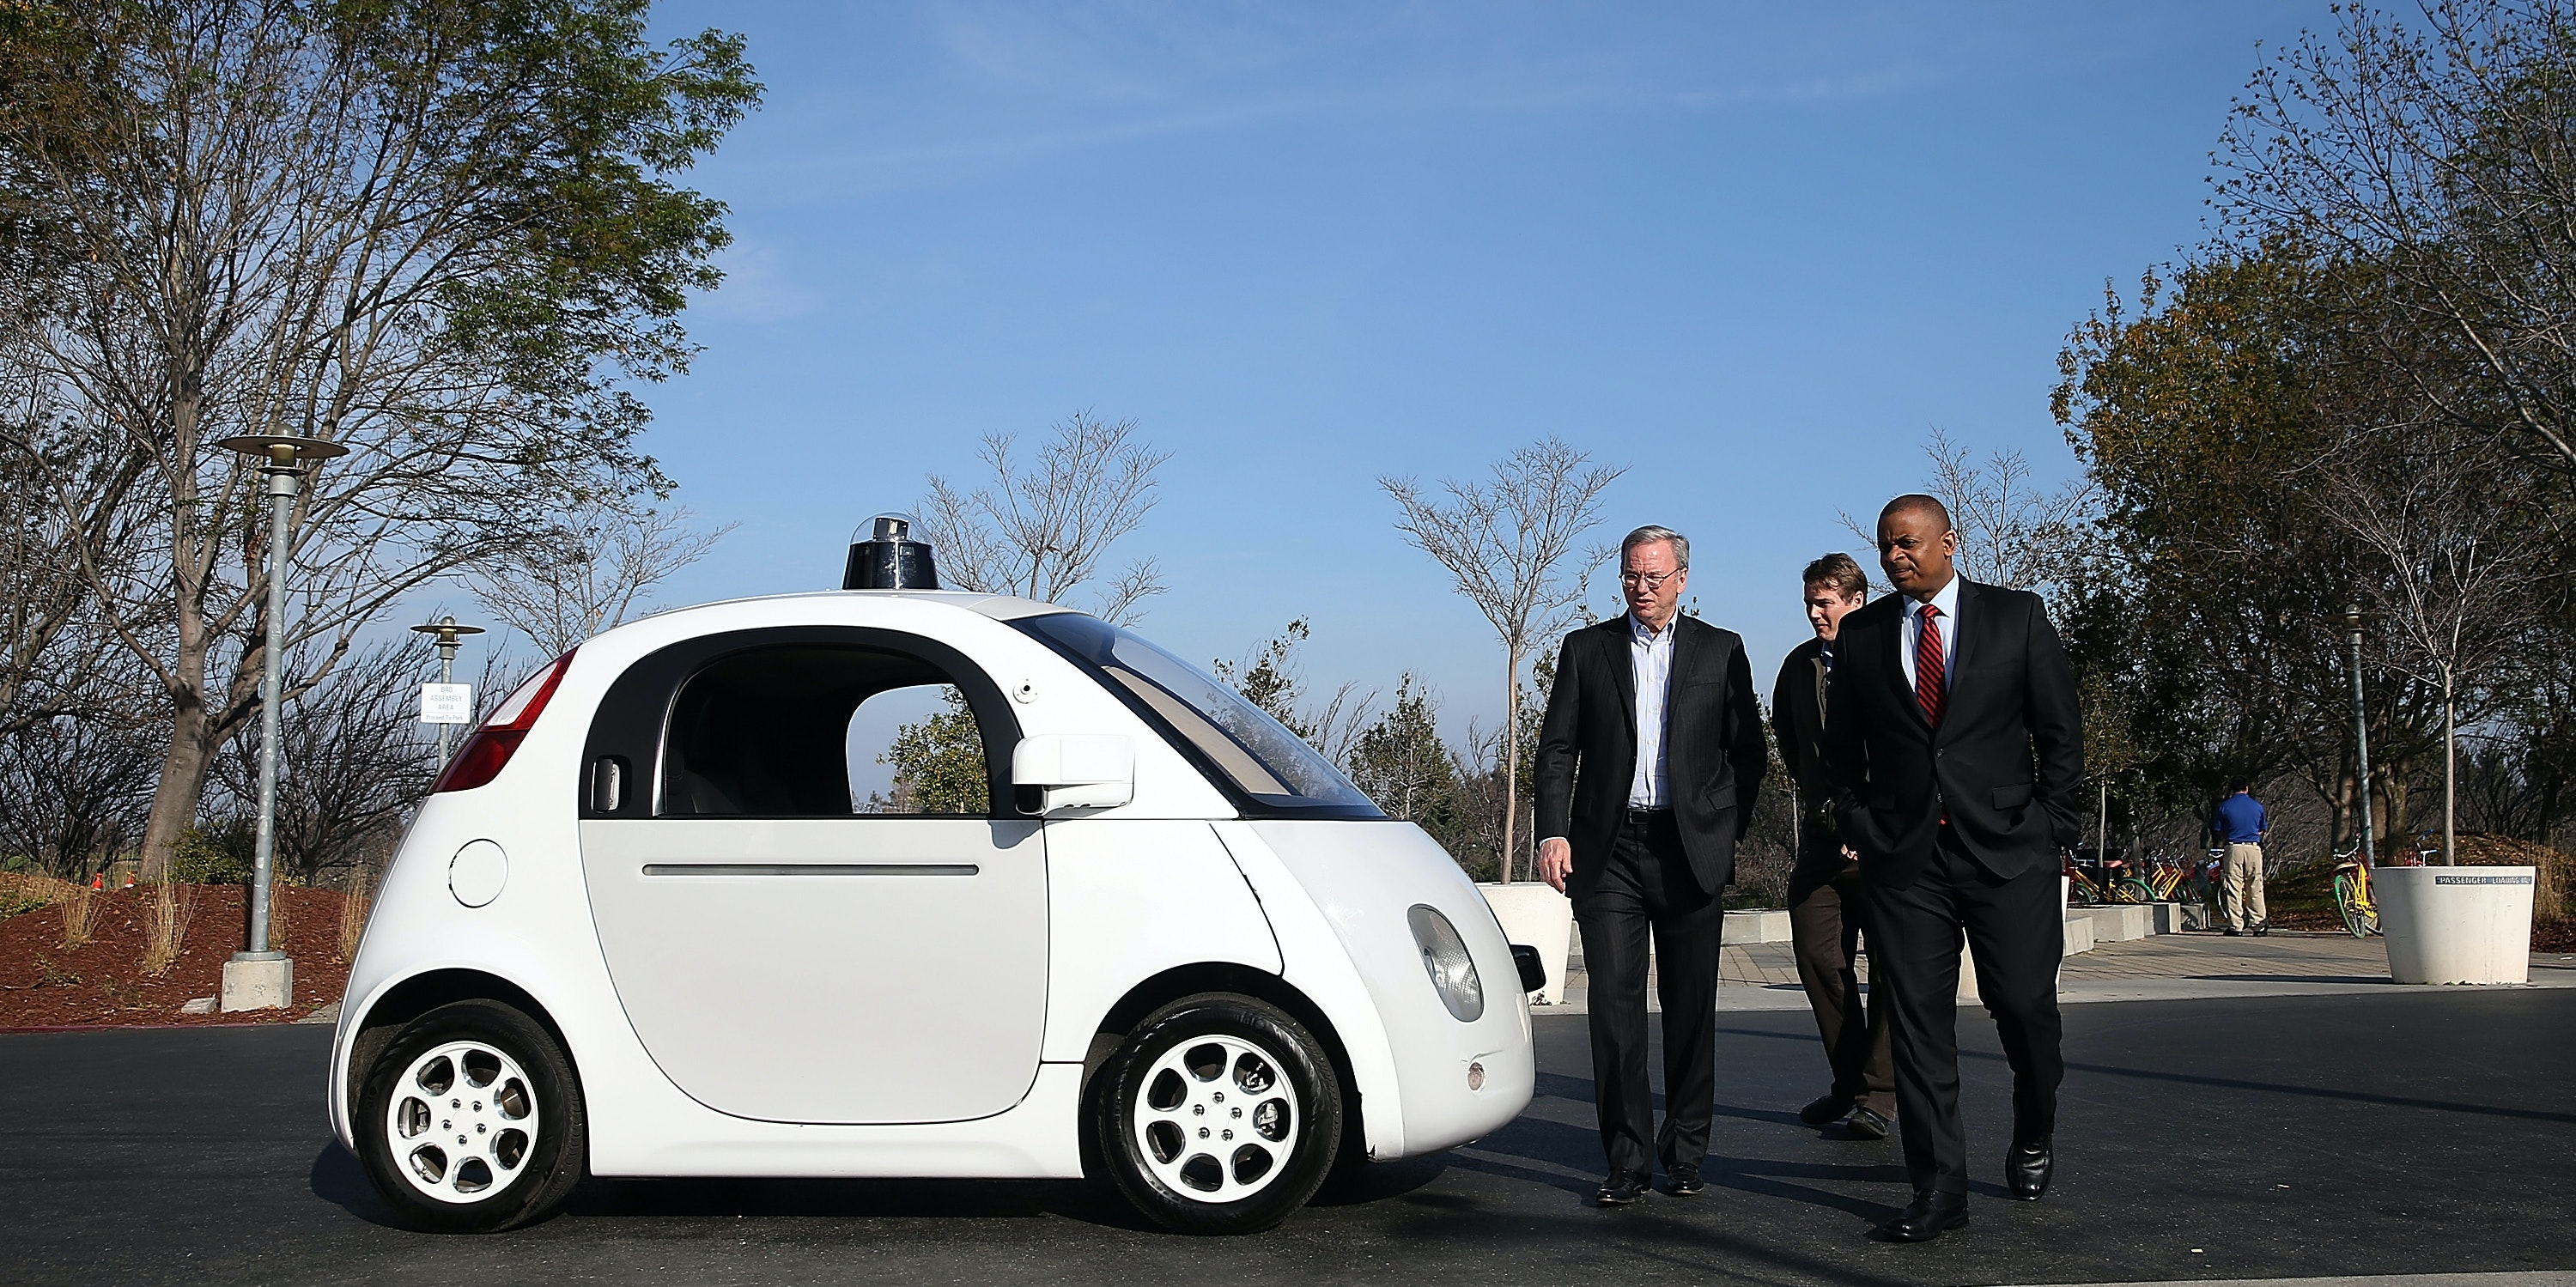 Why Not Treat Self-Driving Cars Like the FAA Does ...